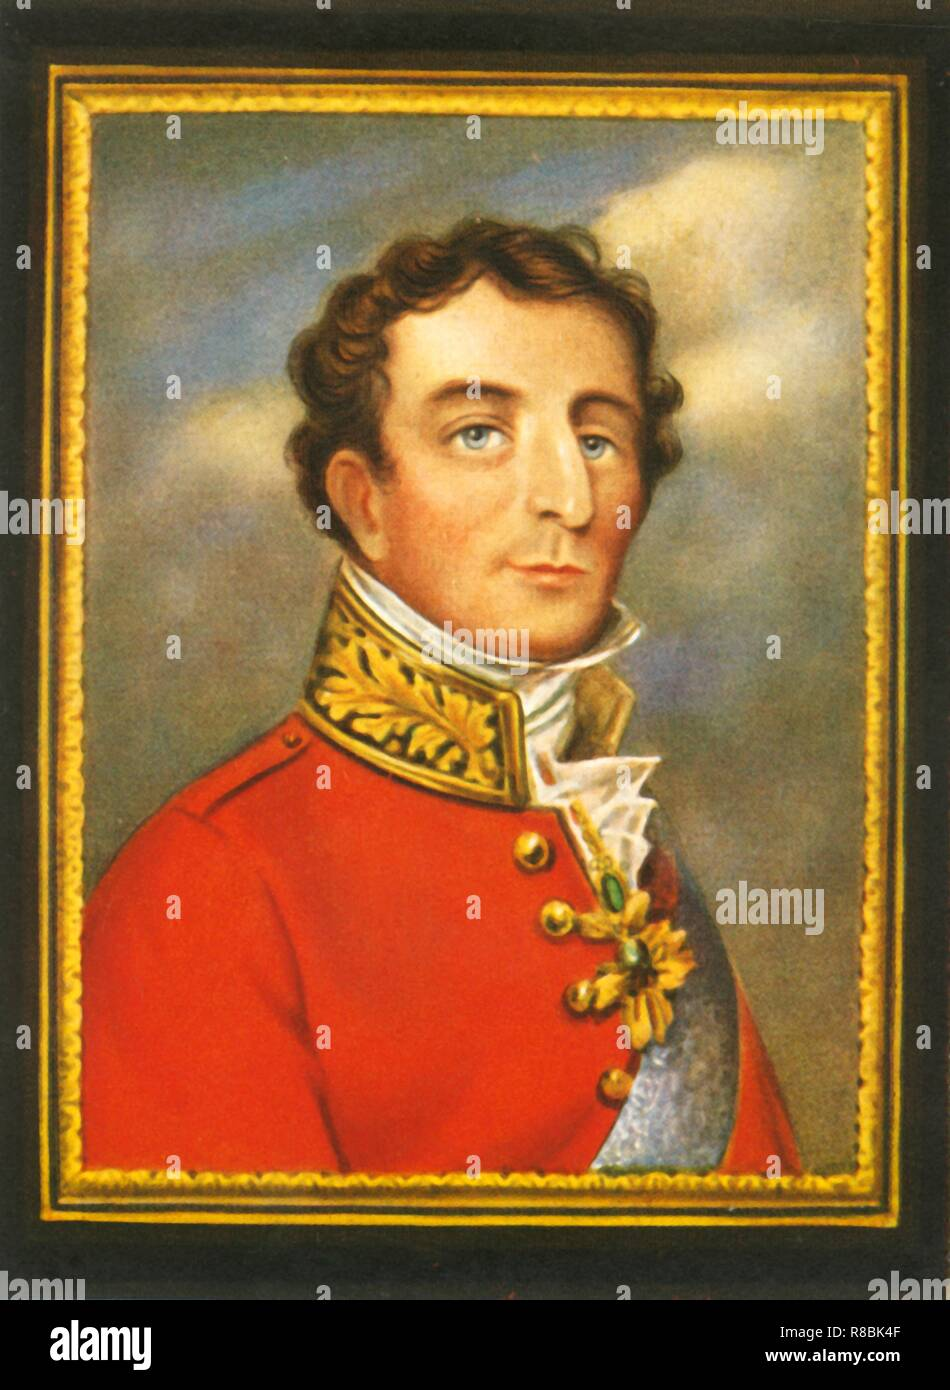 'Sir Arthur Wellesey Duke of Wellington', (1933). Portrait of British/Irish soldier and statesman Arthur Wellesley, 1st Duke of Wellington (1769-1852). Wellington commanded the victorious British forces in the Peninsular War, for which he was promoted to Field Marshal and made a duke. In 1815 he inflicted the final defeat on Napoleon at Waterloo. Christened the 'Iron Duke', Wellington served as Prime Minister in 1828-1830, but his intransigent opposition to parliamentary reform led to him being compelled to resign. His death was marked by a grand funeral and the honour of a burial in St Paul's - Stock Image